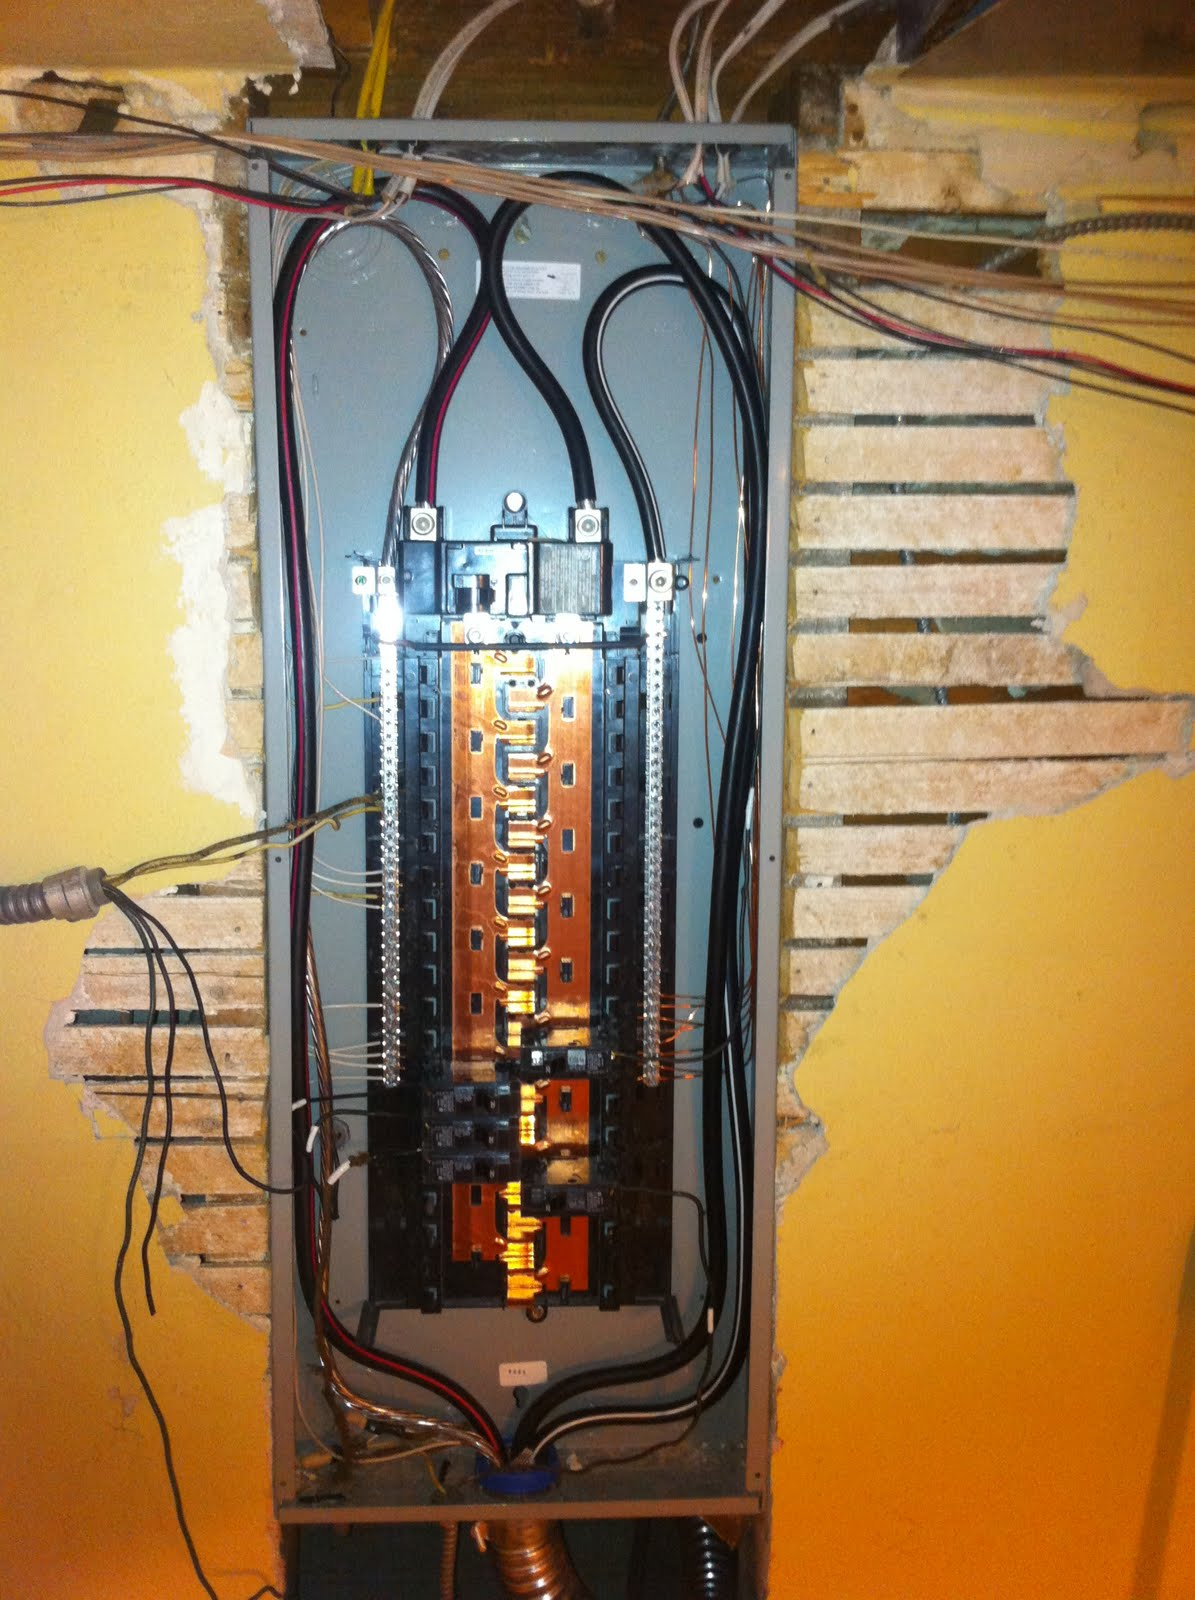 Amp Breaker Box Wiring Free Image About Wiring Diagram And Schematic